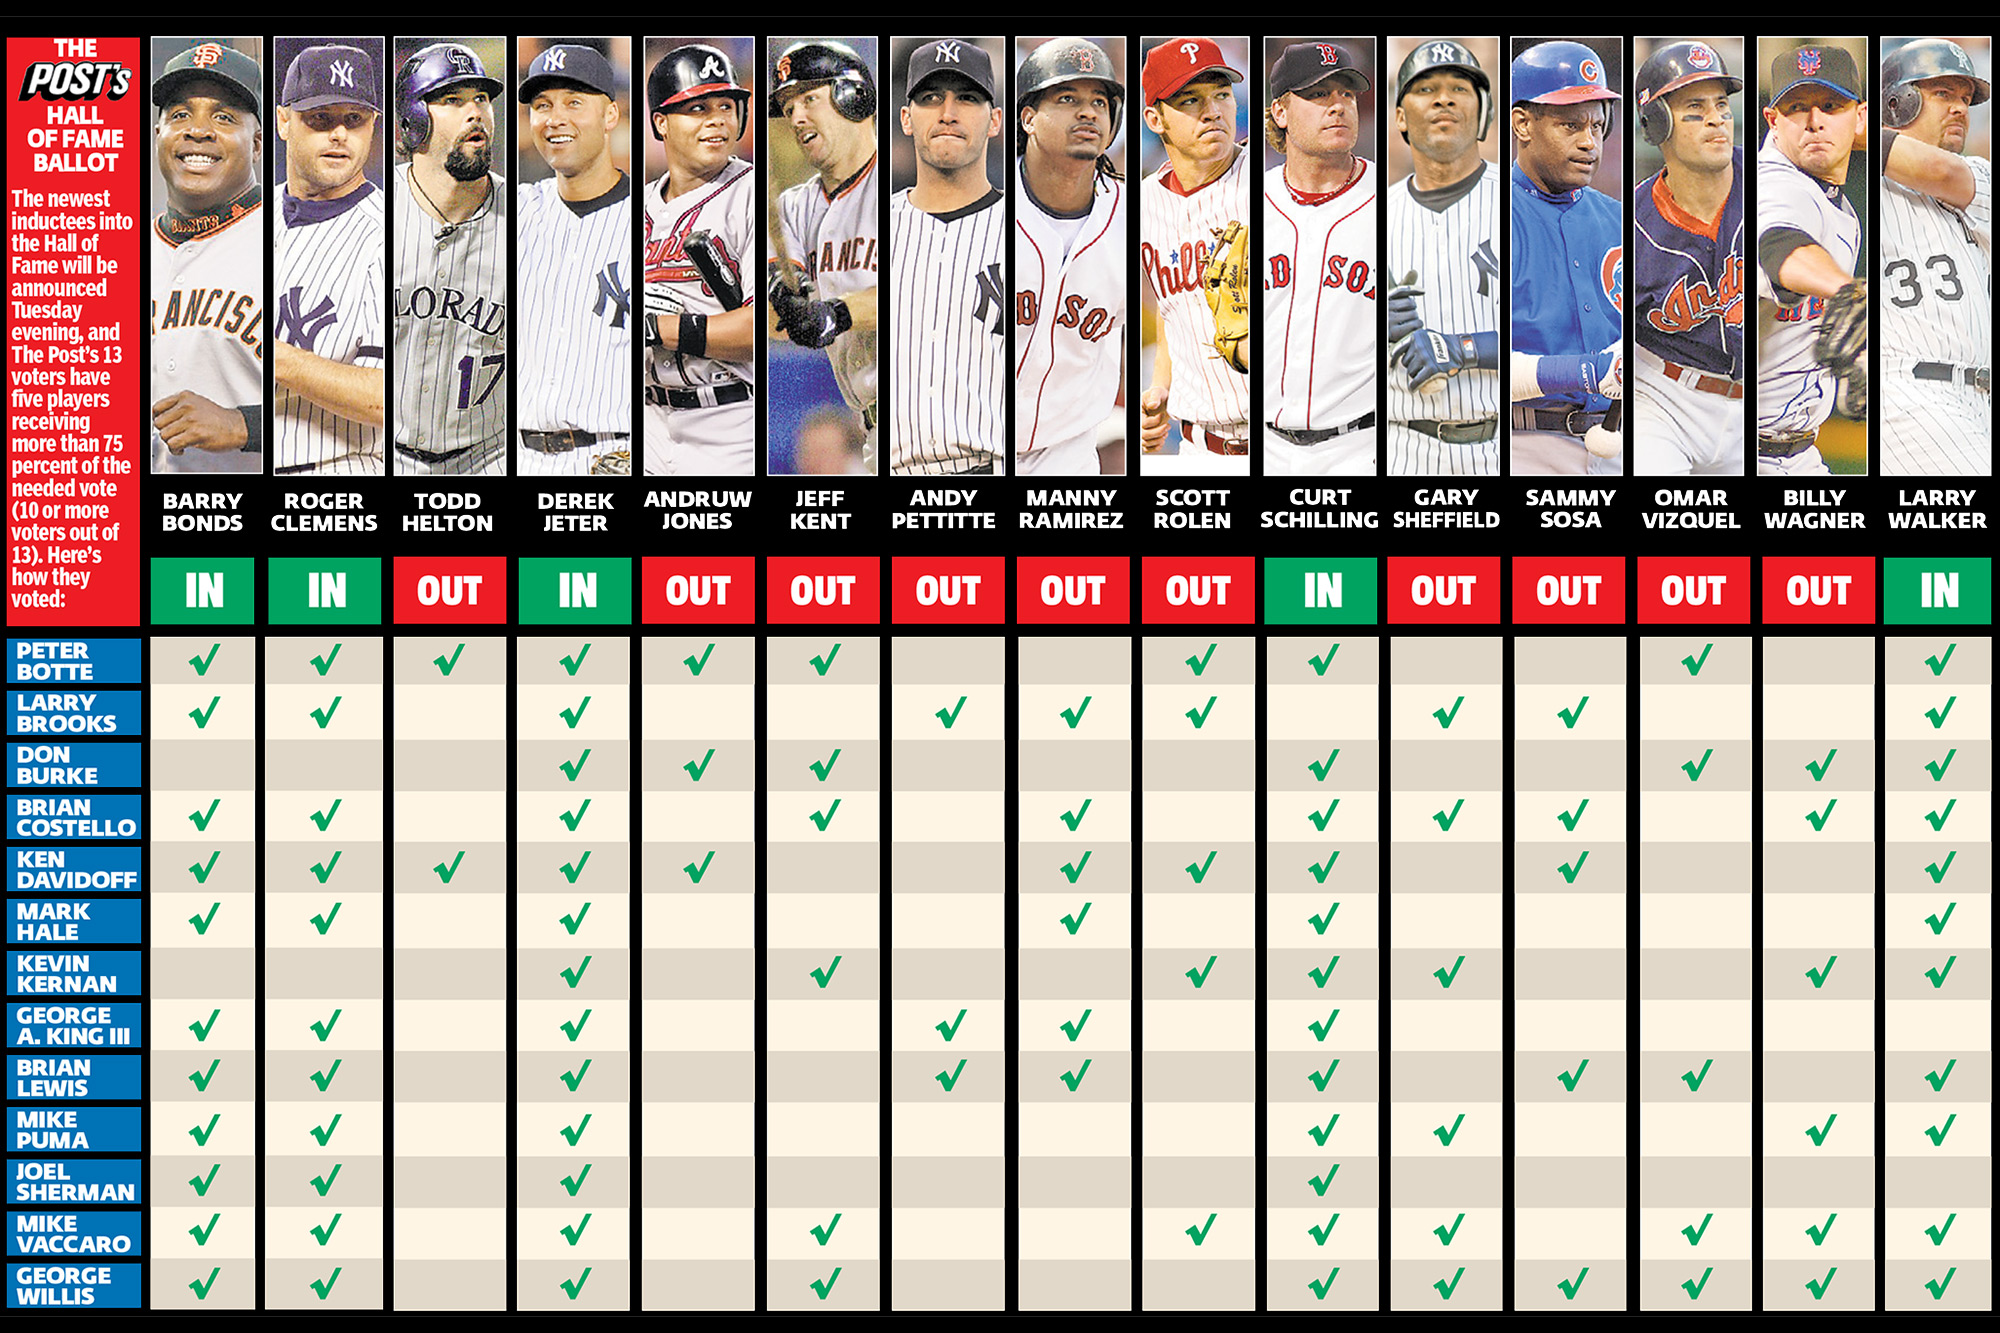 Baseball Hall of Fame 2020: How The Post voted their ballots